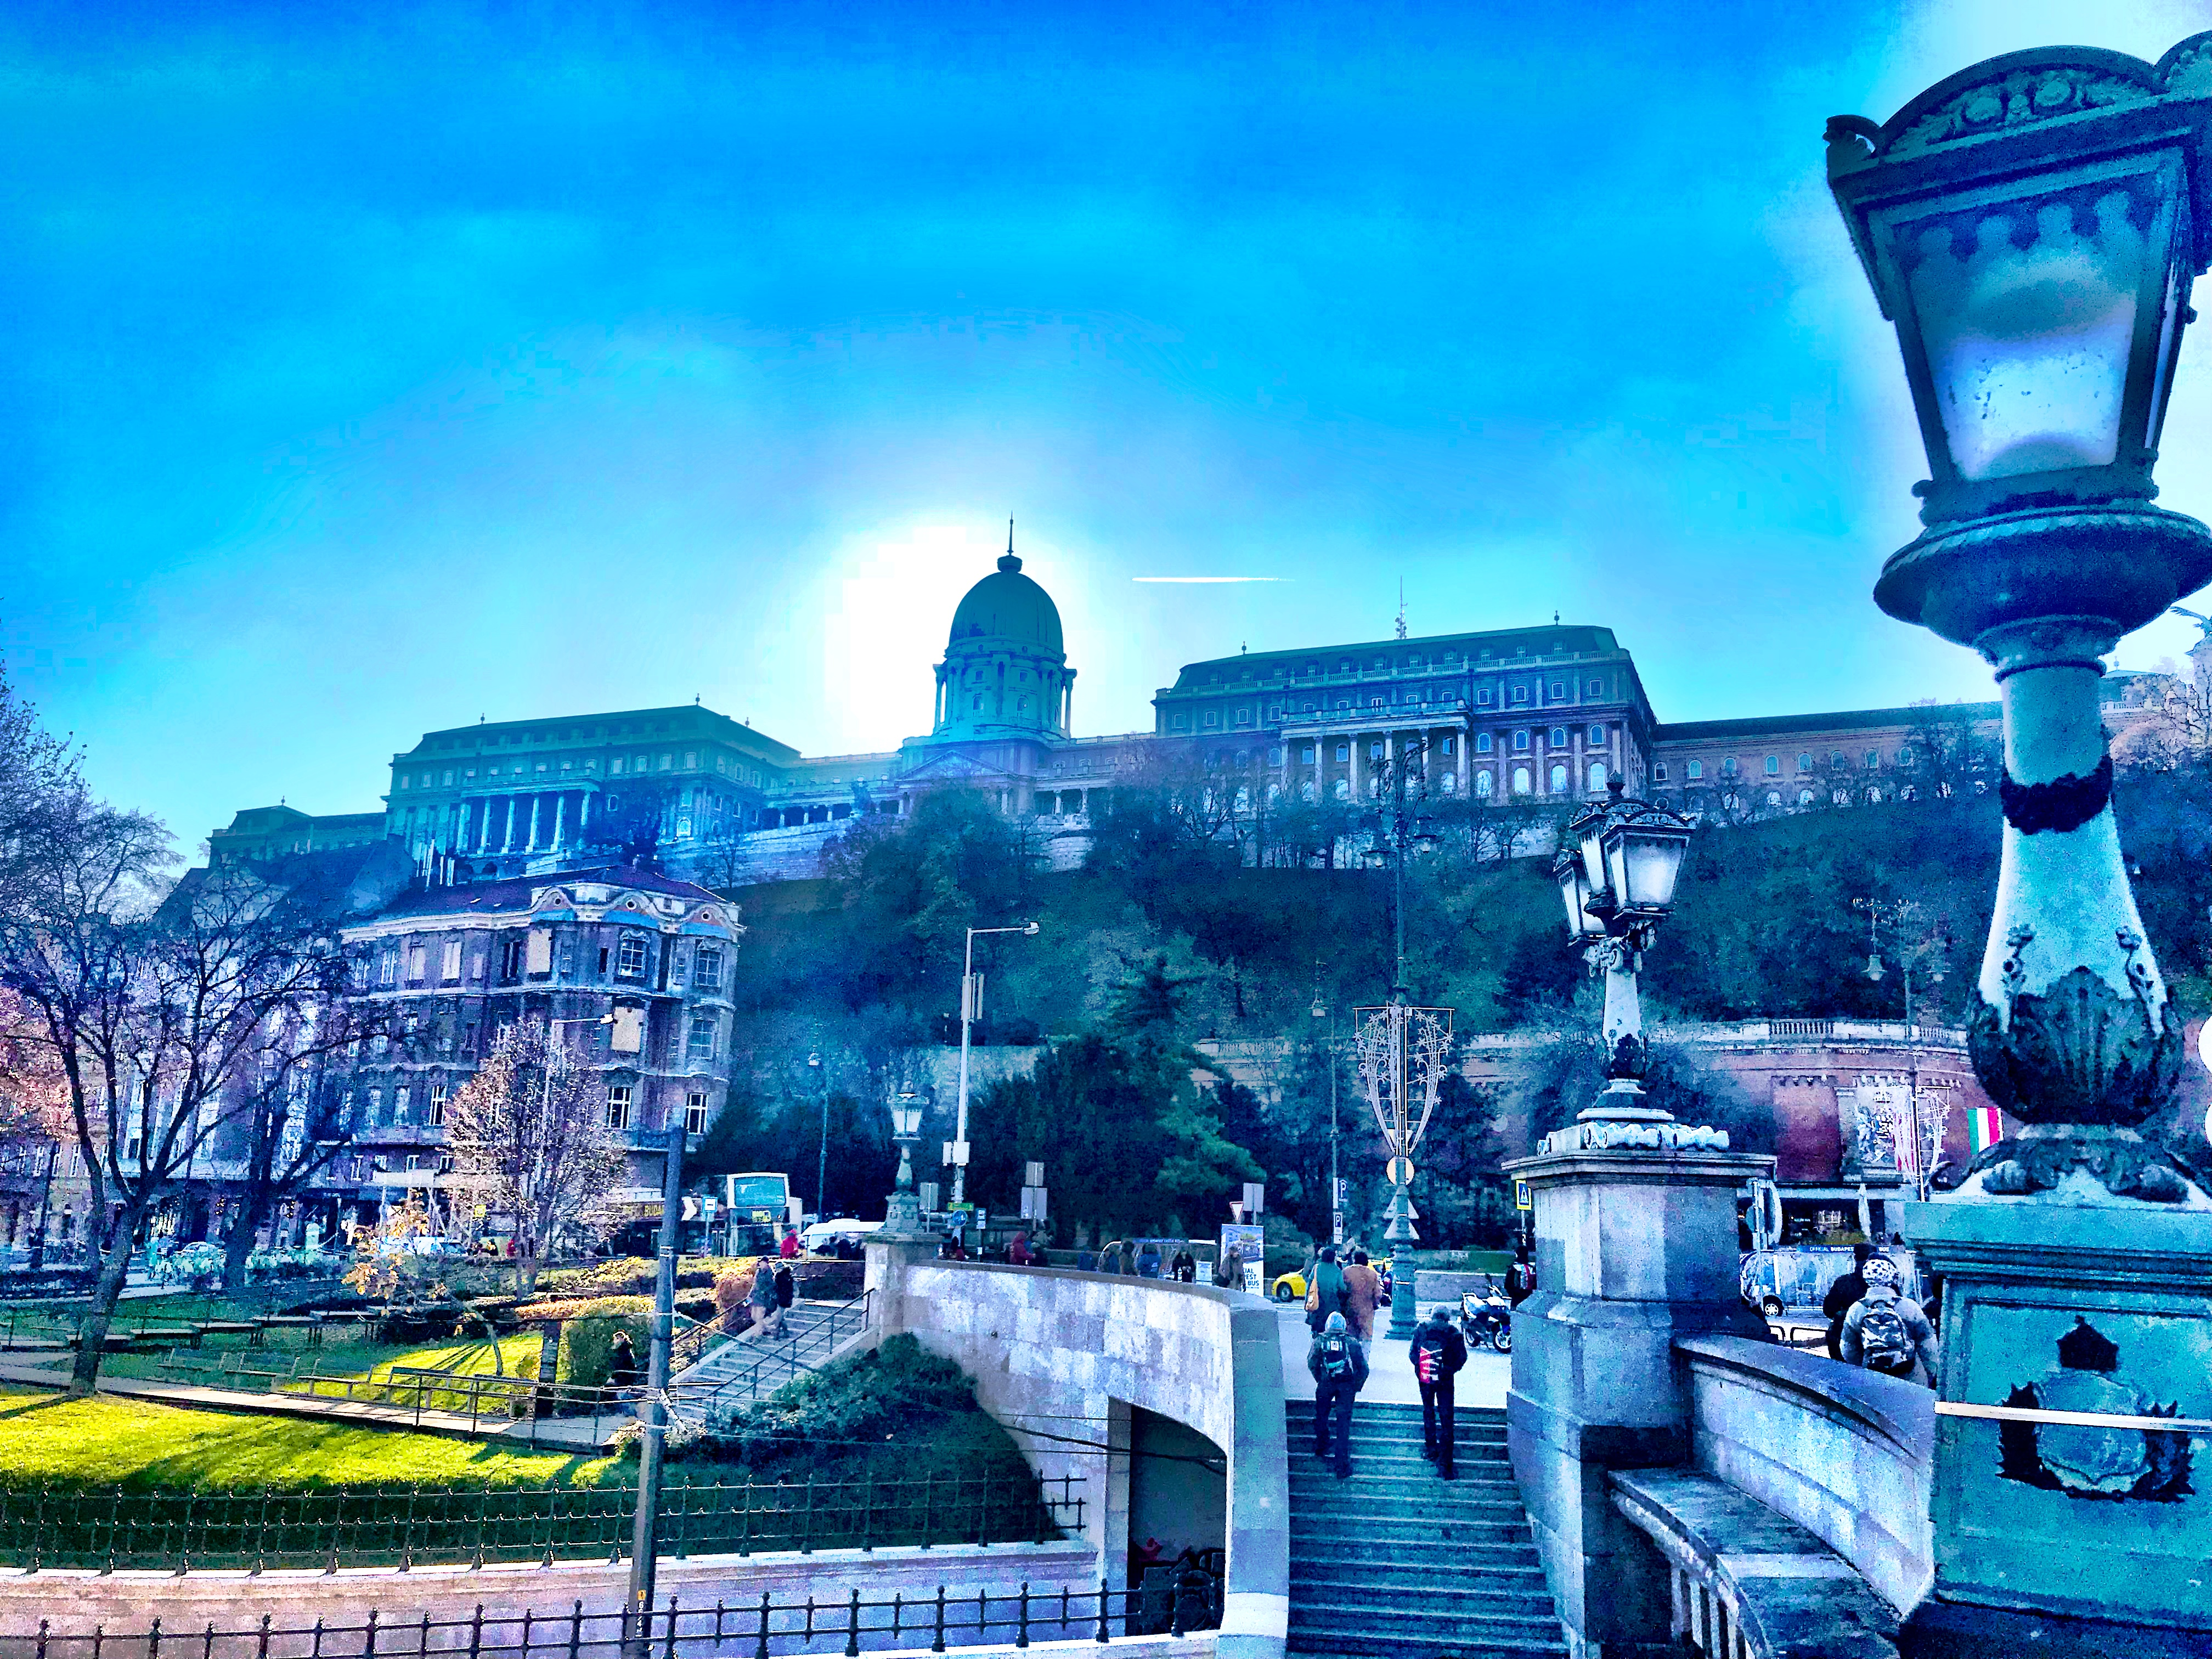 Buda Castle seen from the Széchenyi Chain Bridge in Budapest, Hungary